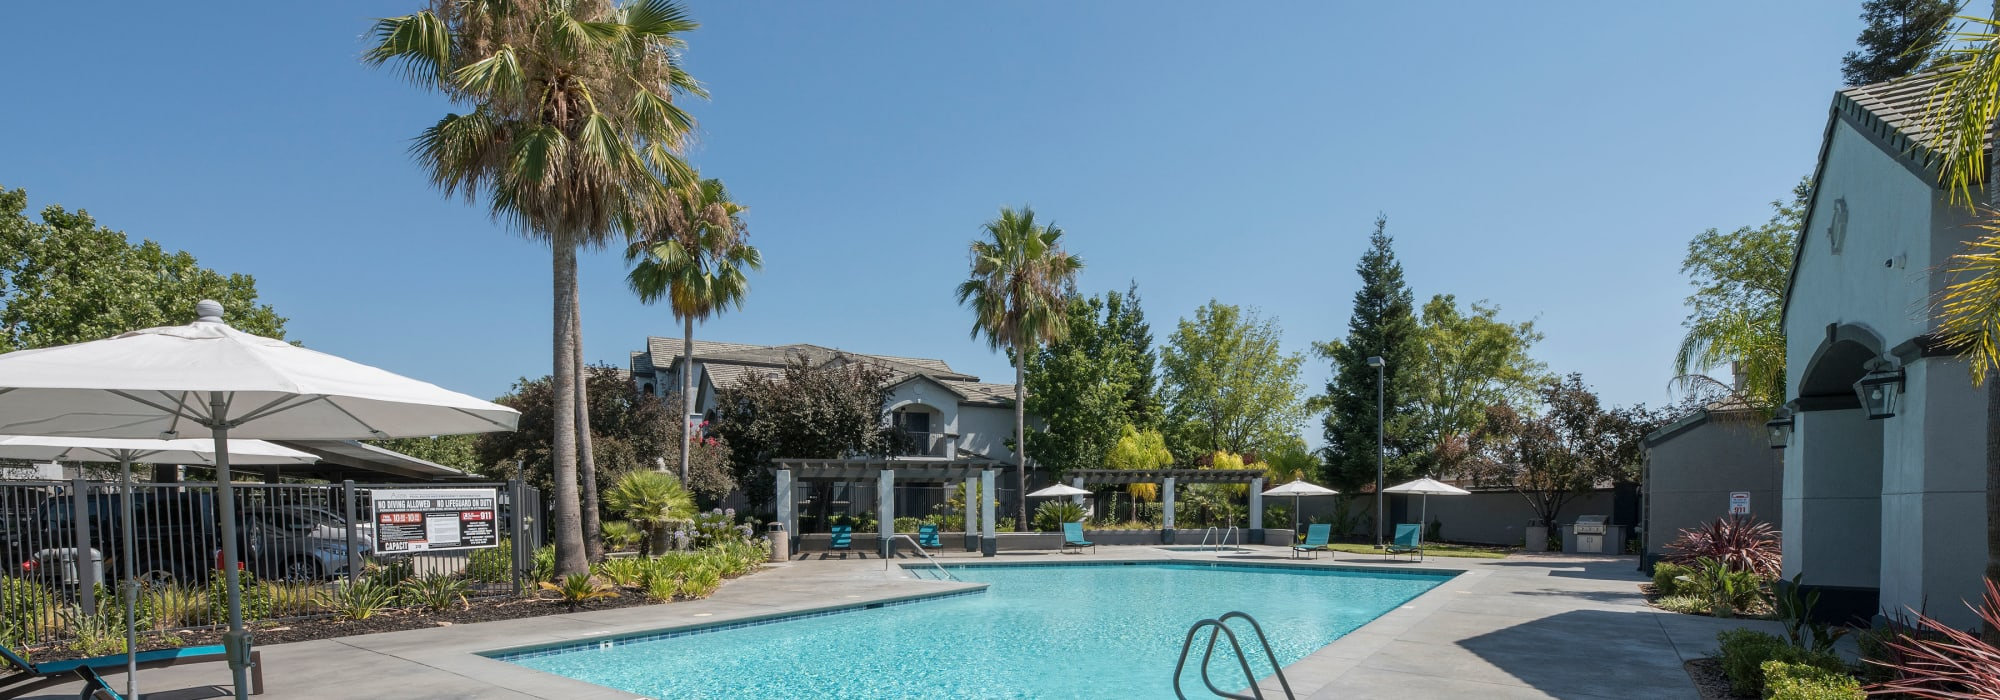 Resident Portal at Avion Apartments in Rancho Cordova, California